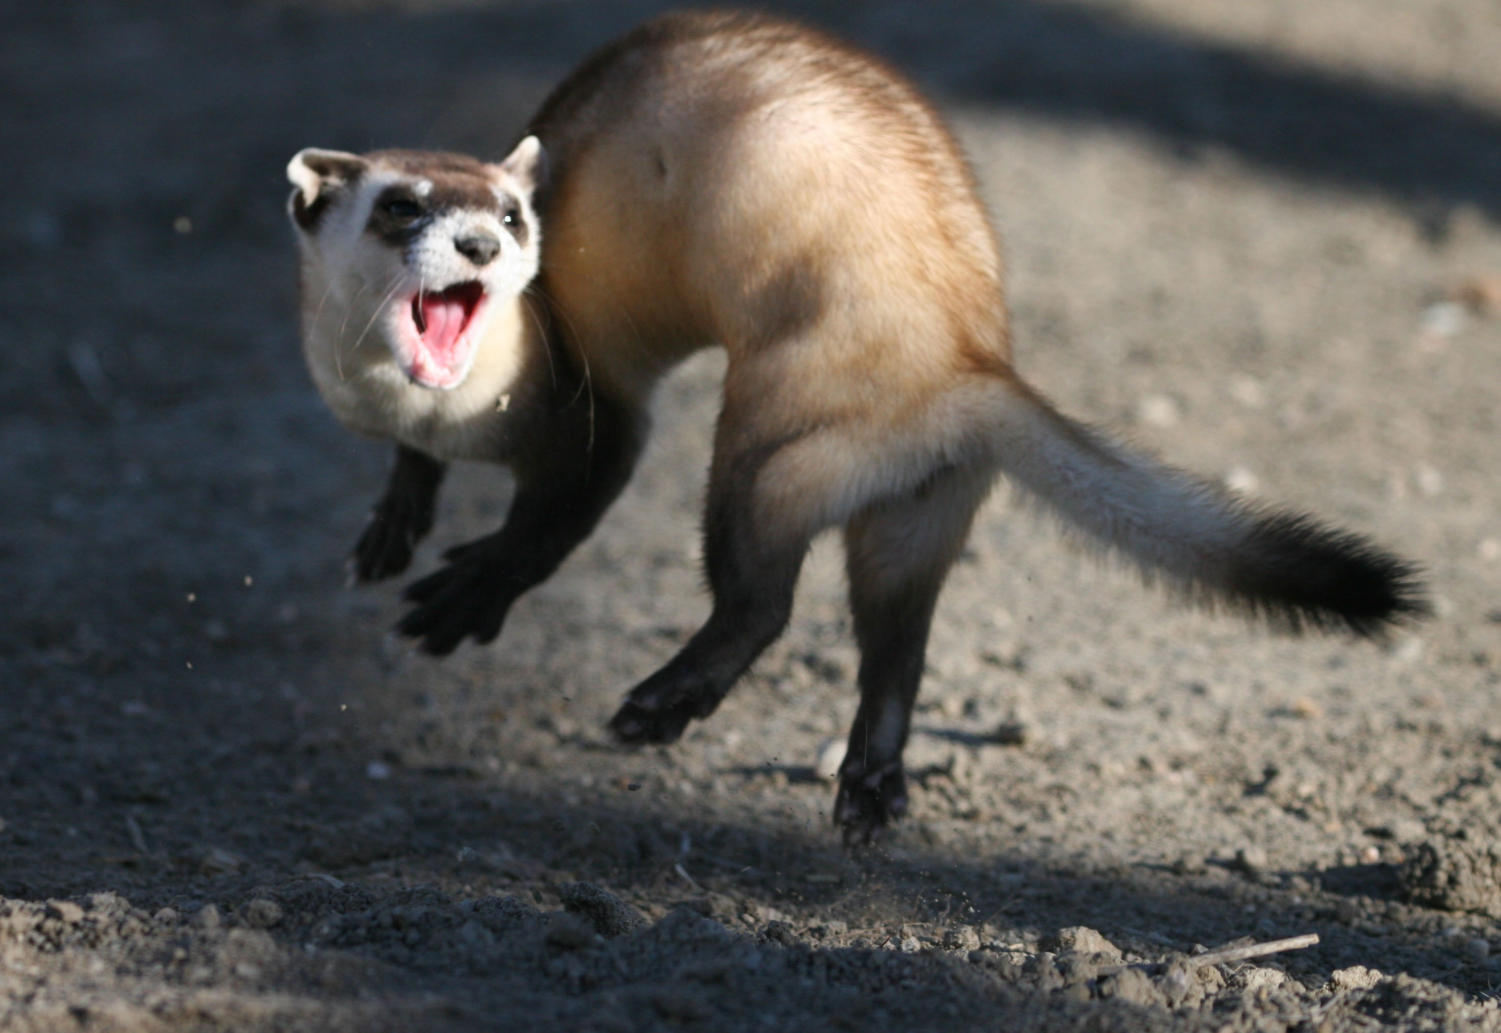 The+black+footed+ferret+is+native+to+central+North+America%2C+including+Colorado.+Declining+prairie+dog+populations+led+to+a+decline+in+their+population%2C+at+one+point+they+were+considered+extinct+in+the+wild+but+with+lots+of+conservation+efforts+they+were+reintroduced+and+now+there+are+roughly+1000+in+the+wild.